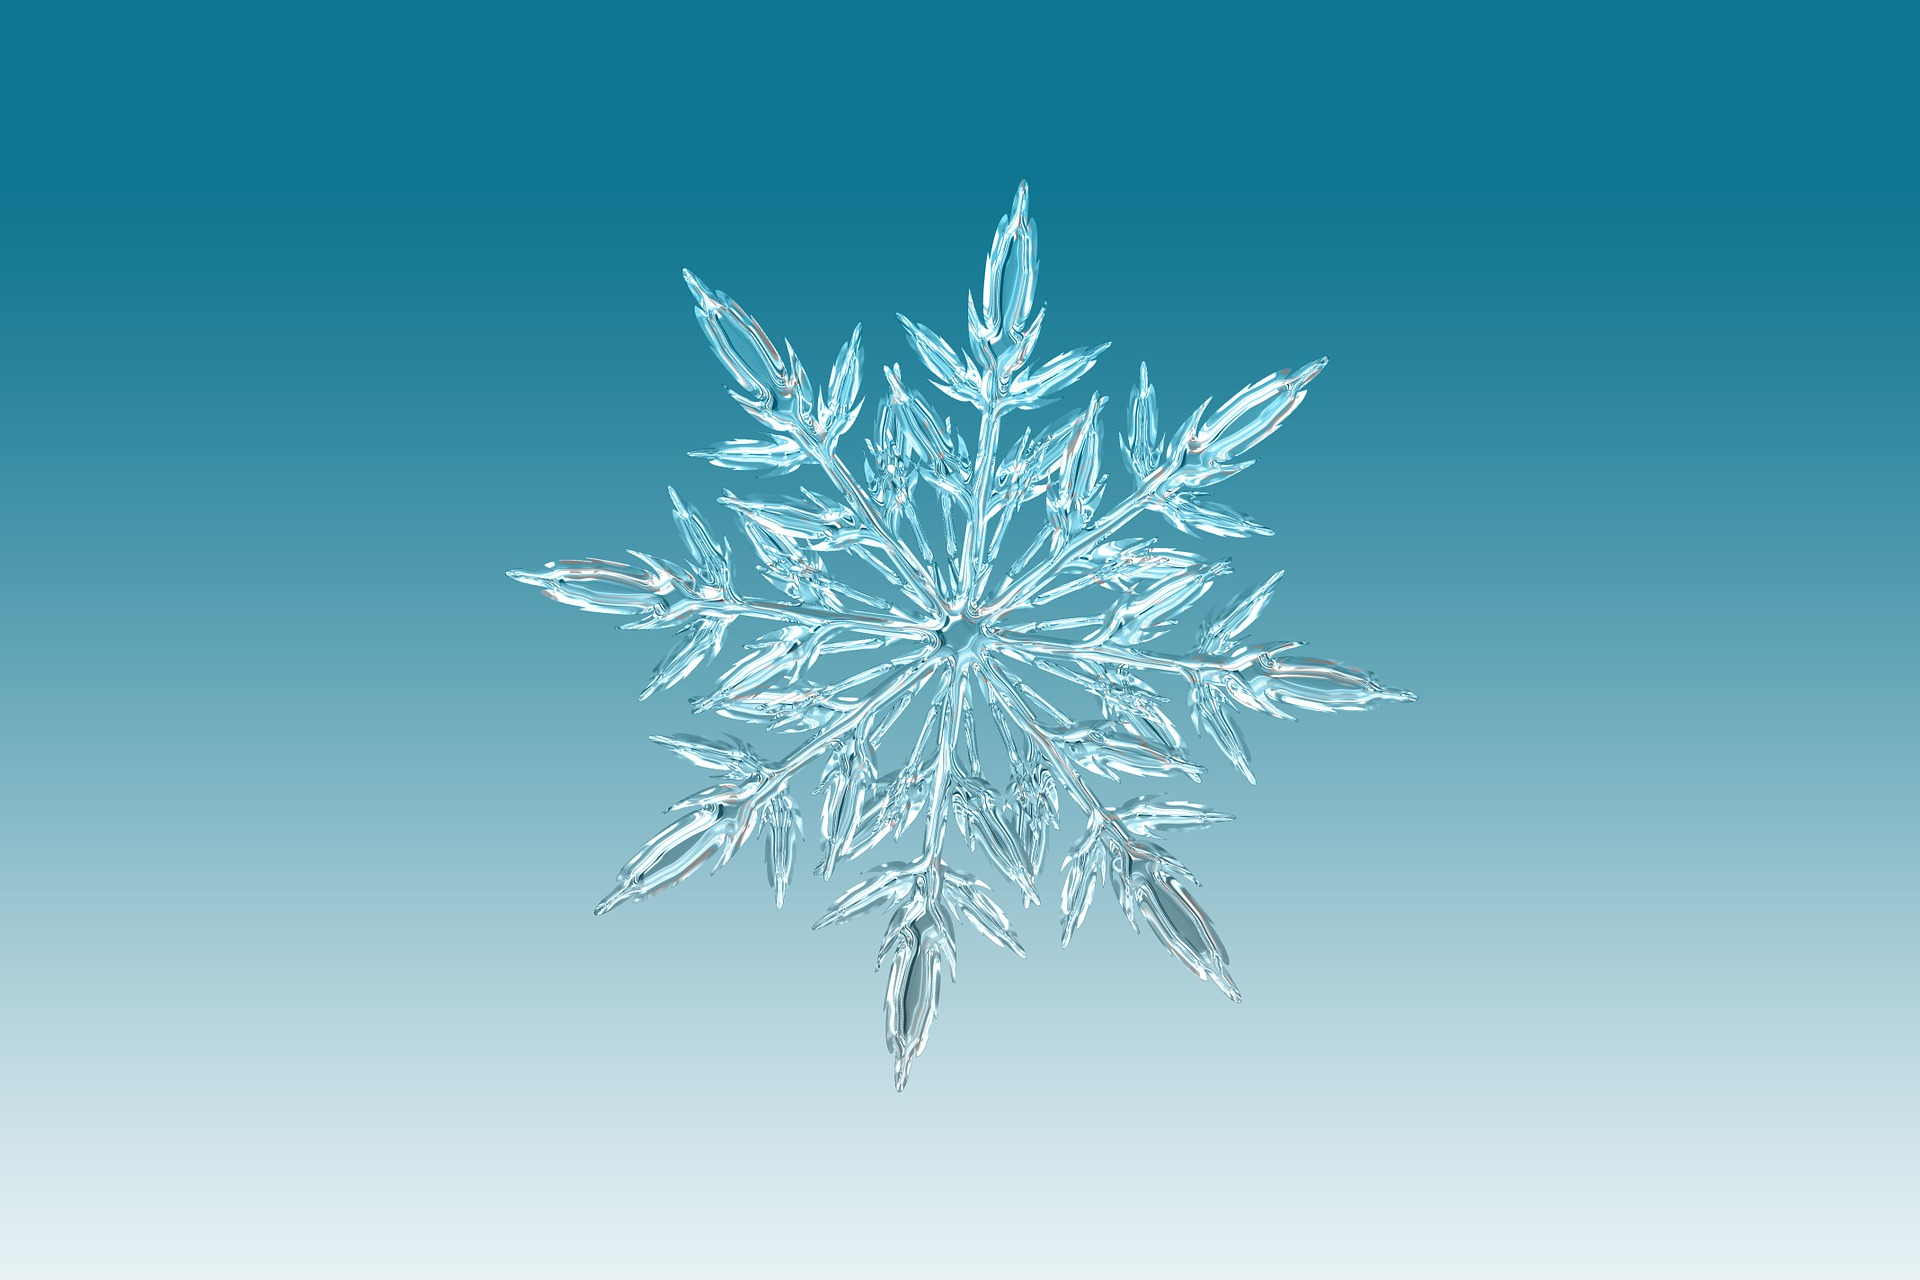 ice-crystal-1065155_1920